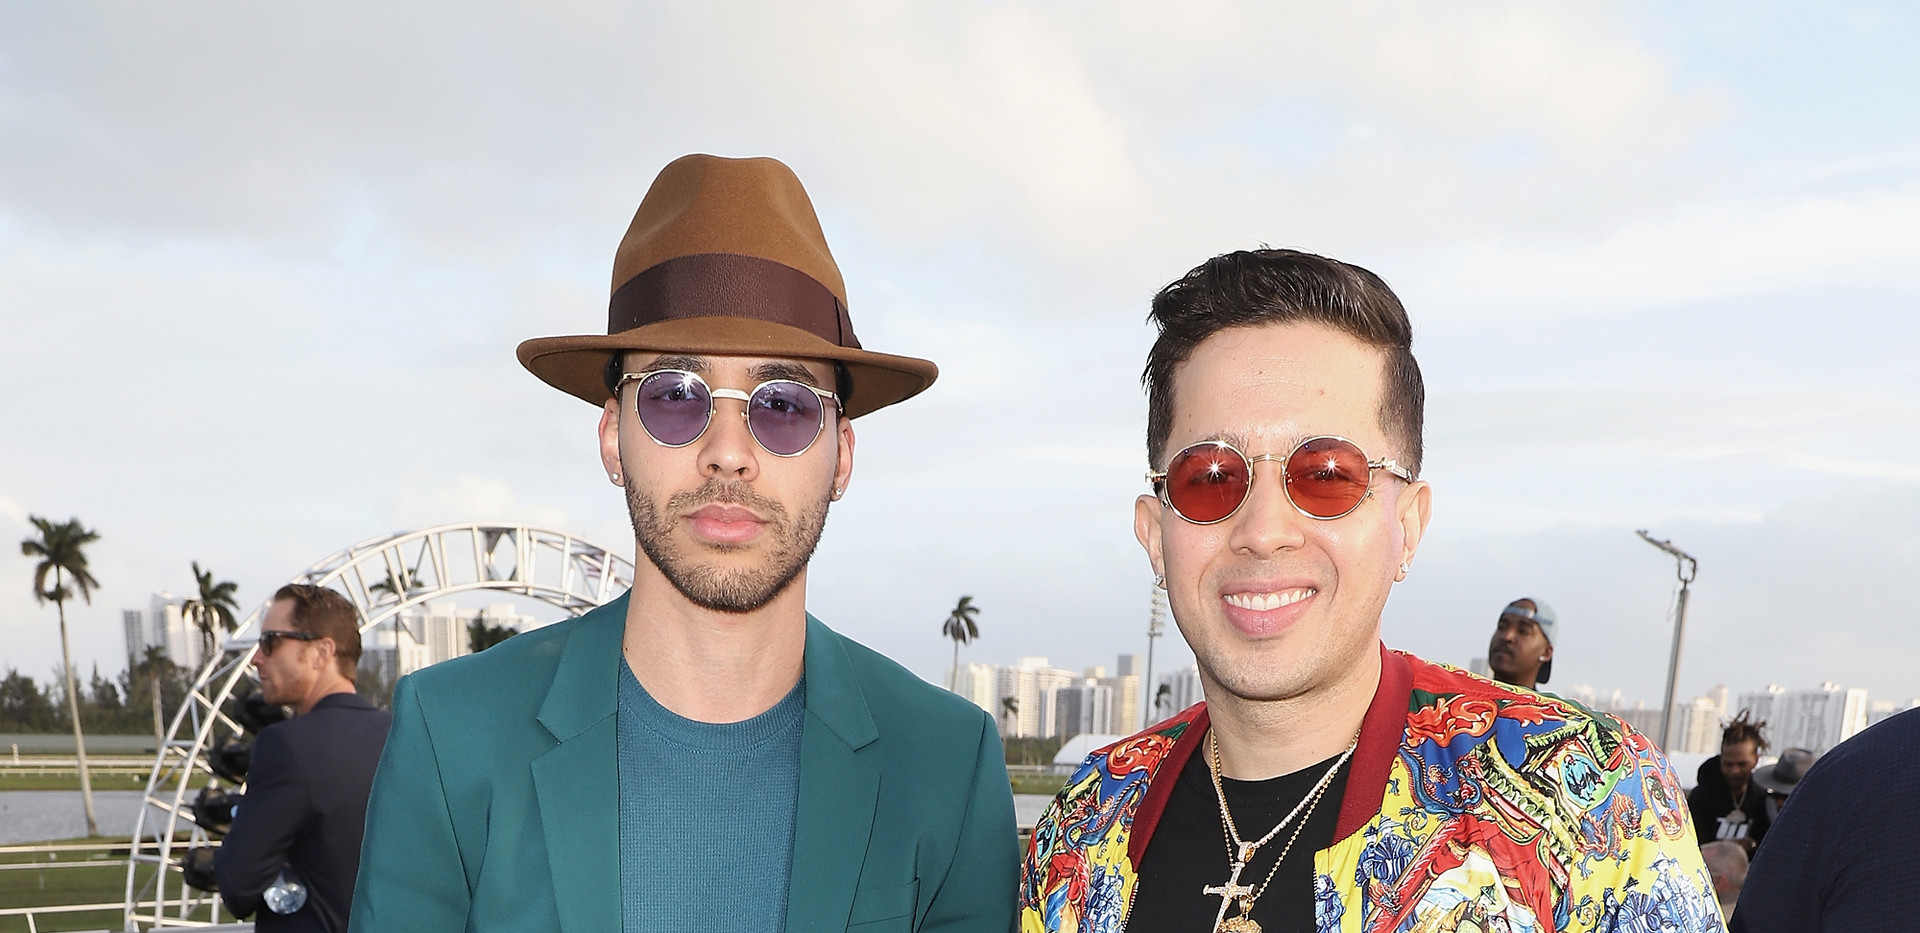 Prince Royce and De La Ghetto at the $16